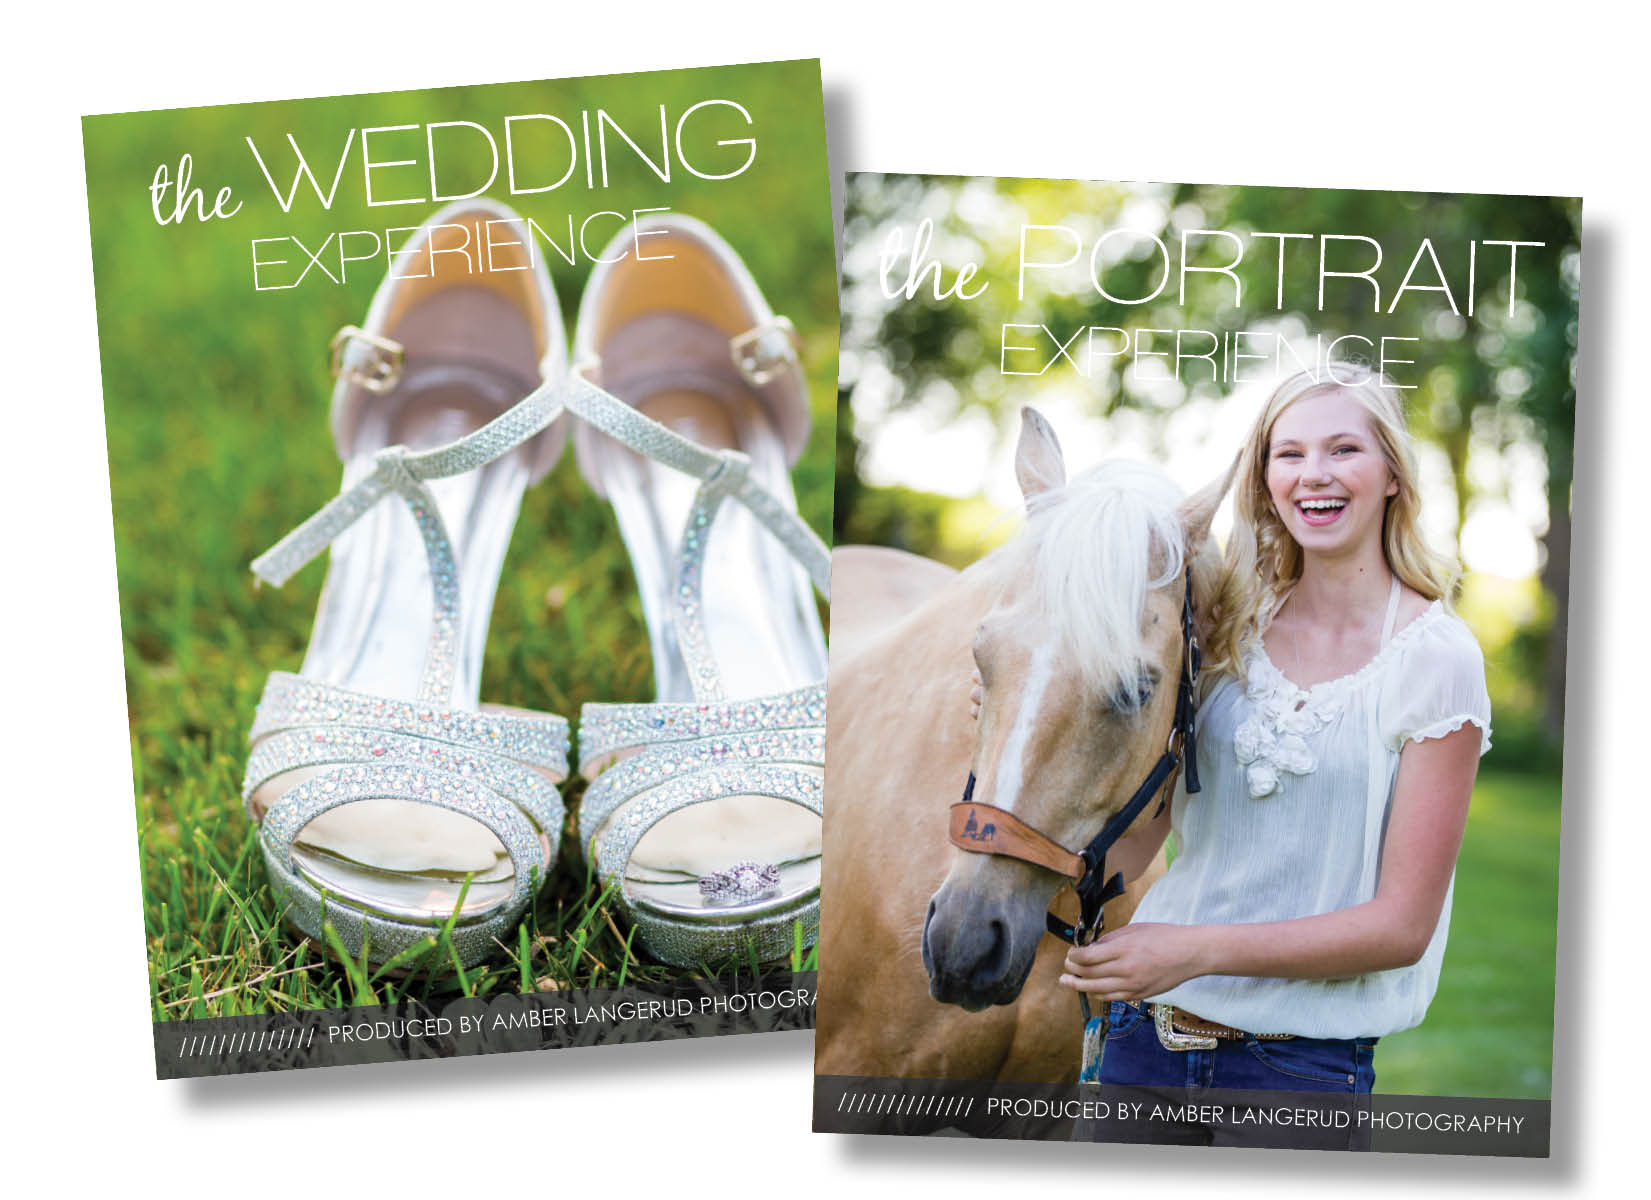 Amber Langerud Photography High School Senior and Wedding Guides